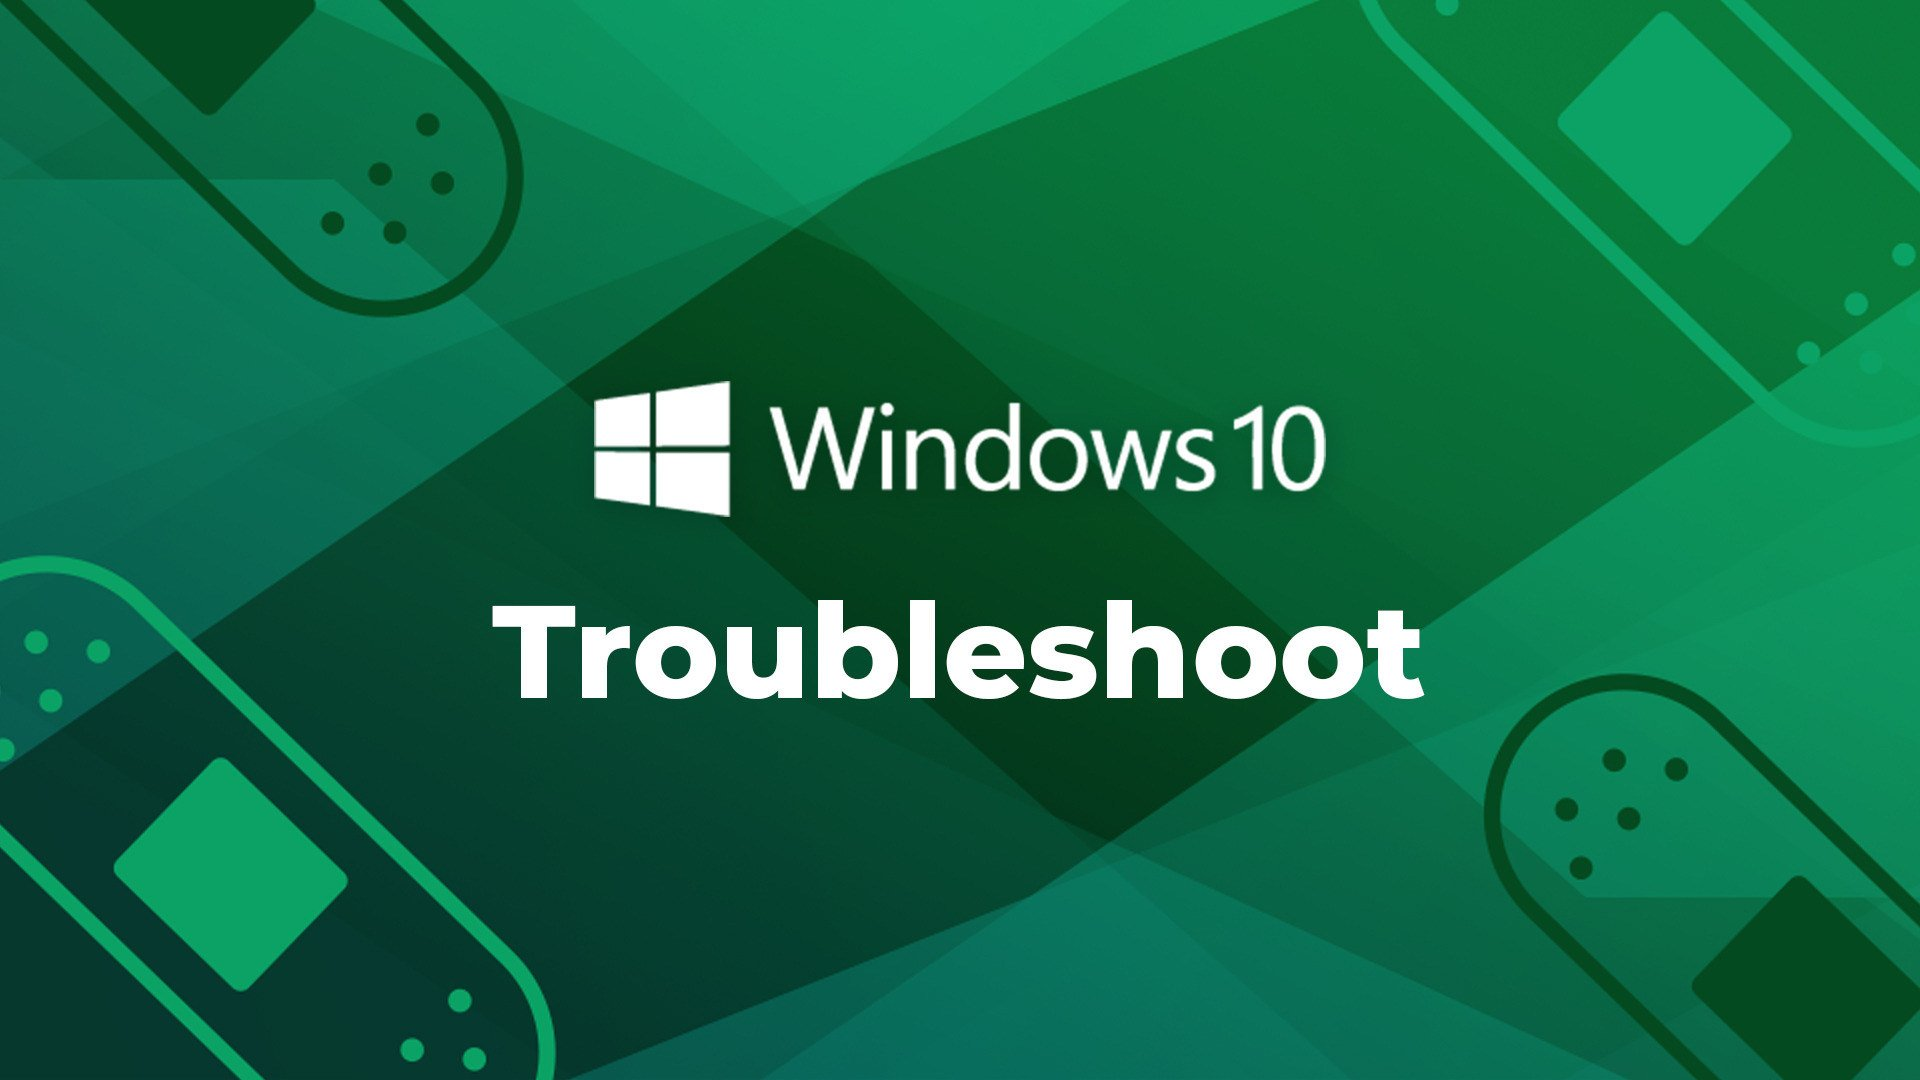 Windows 10, Fehler, Bug, Windows Update, Bugs, Fehlerbehebung, Bugfix, Windows 10 Update, Windows 10 bugs, Windows 10 Bug, Windows 10 Fehler, Bugs bugs bugs, Update Fehler, Fehlercode, Bugfixes, Windows 10 Bugfix, Windows 10 Fehlersuche, Fehlersuche, troubleshooting, Windows 10 Troubleshoot